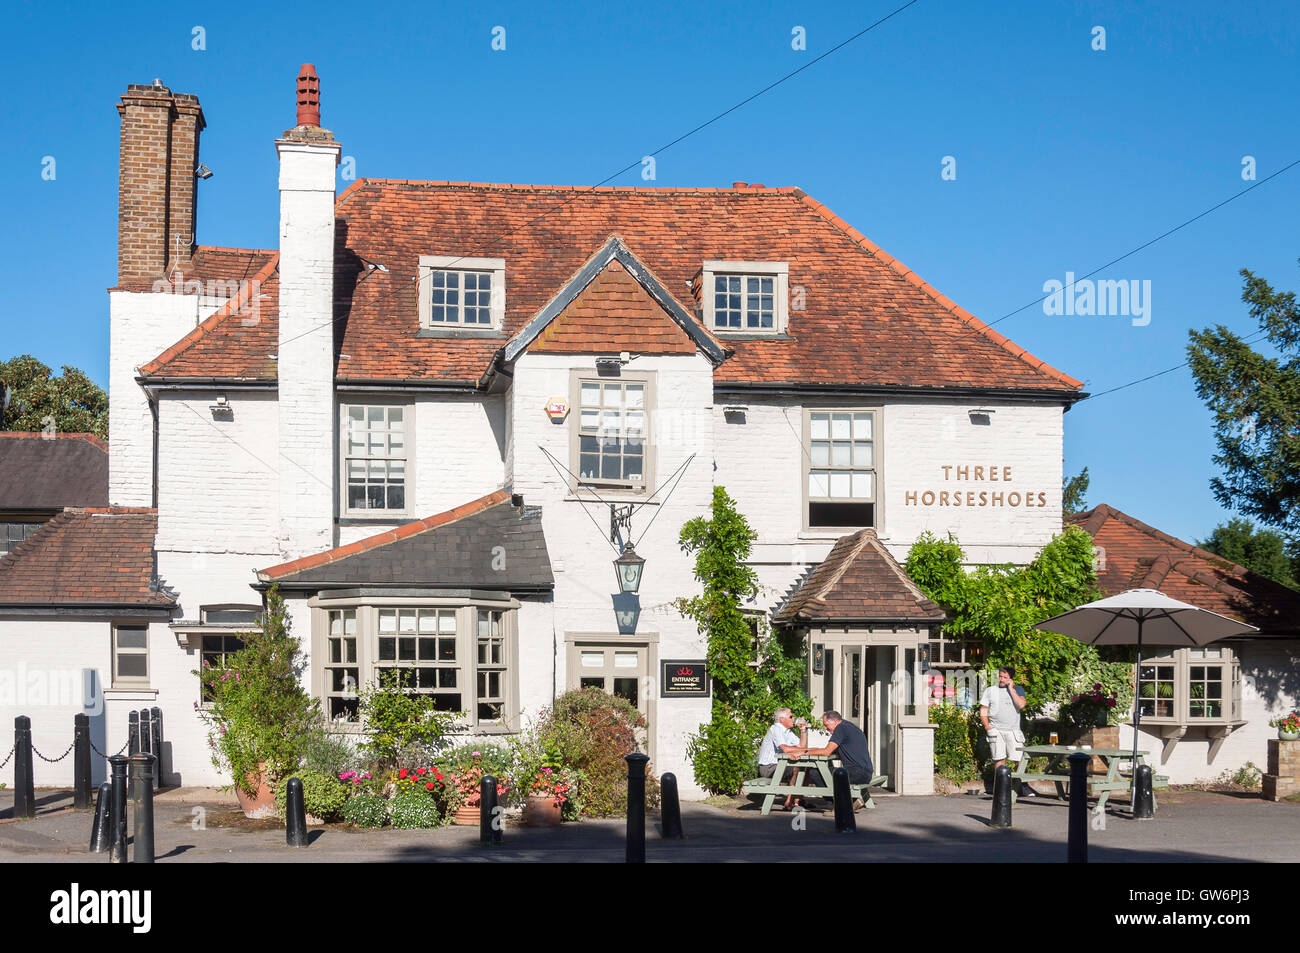 16th century The Three Horseshoes Pub, Shepperton Road, Laleham, Surrey, England, United Kingdom - Stock Image